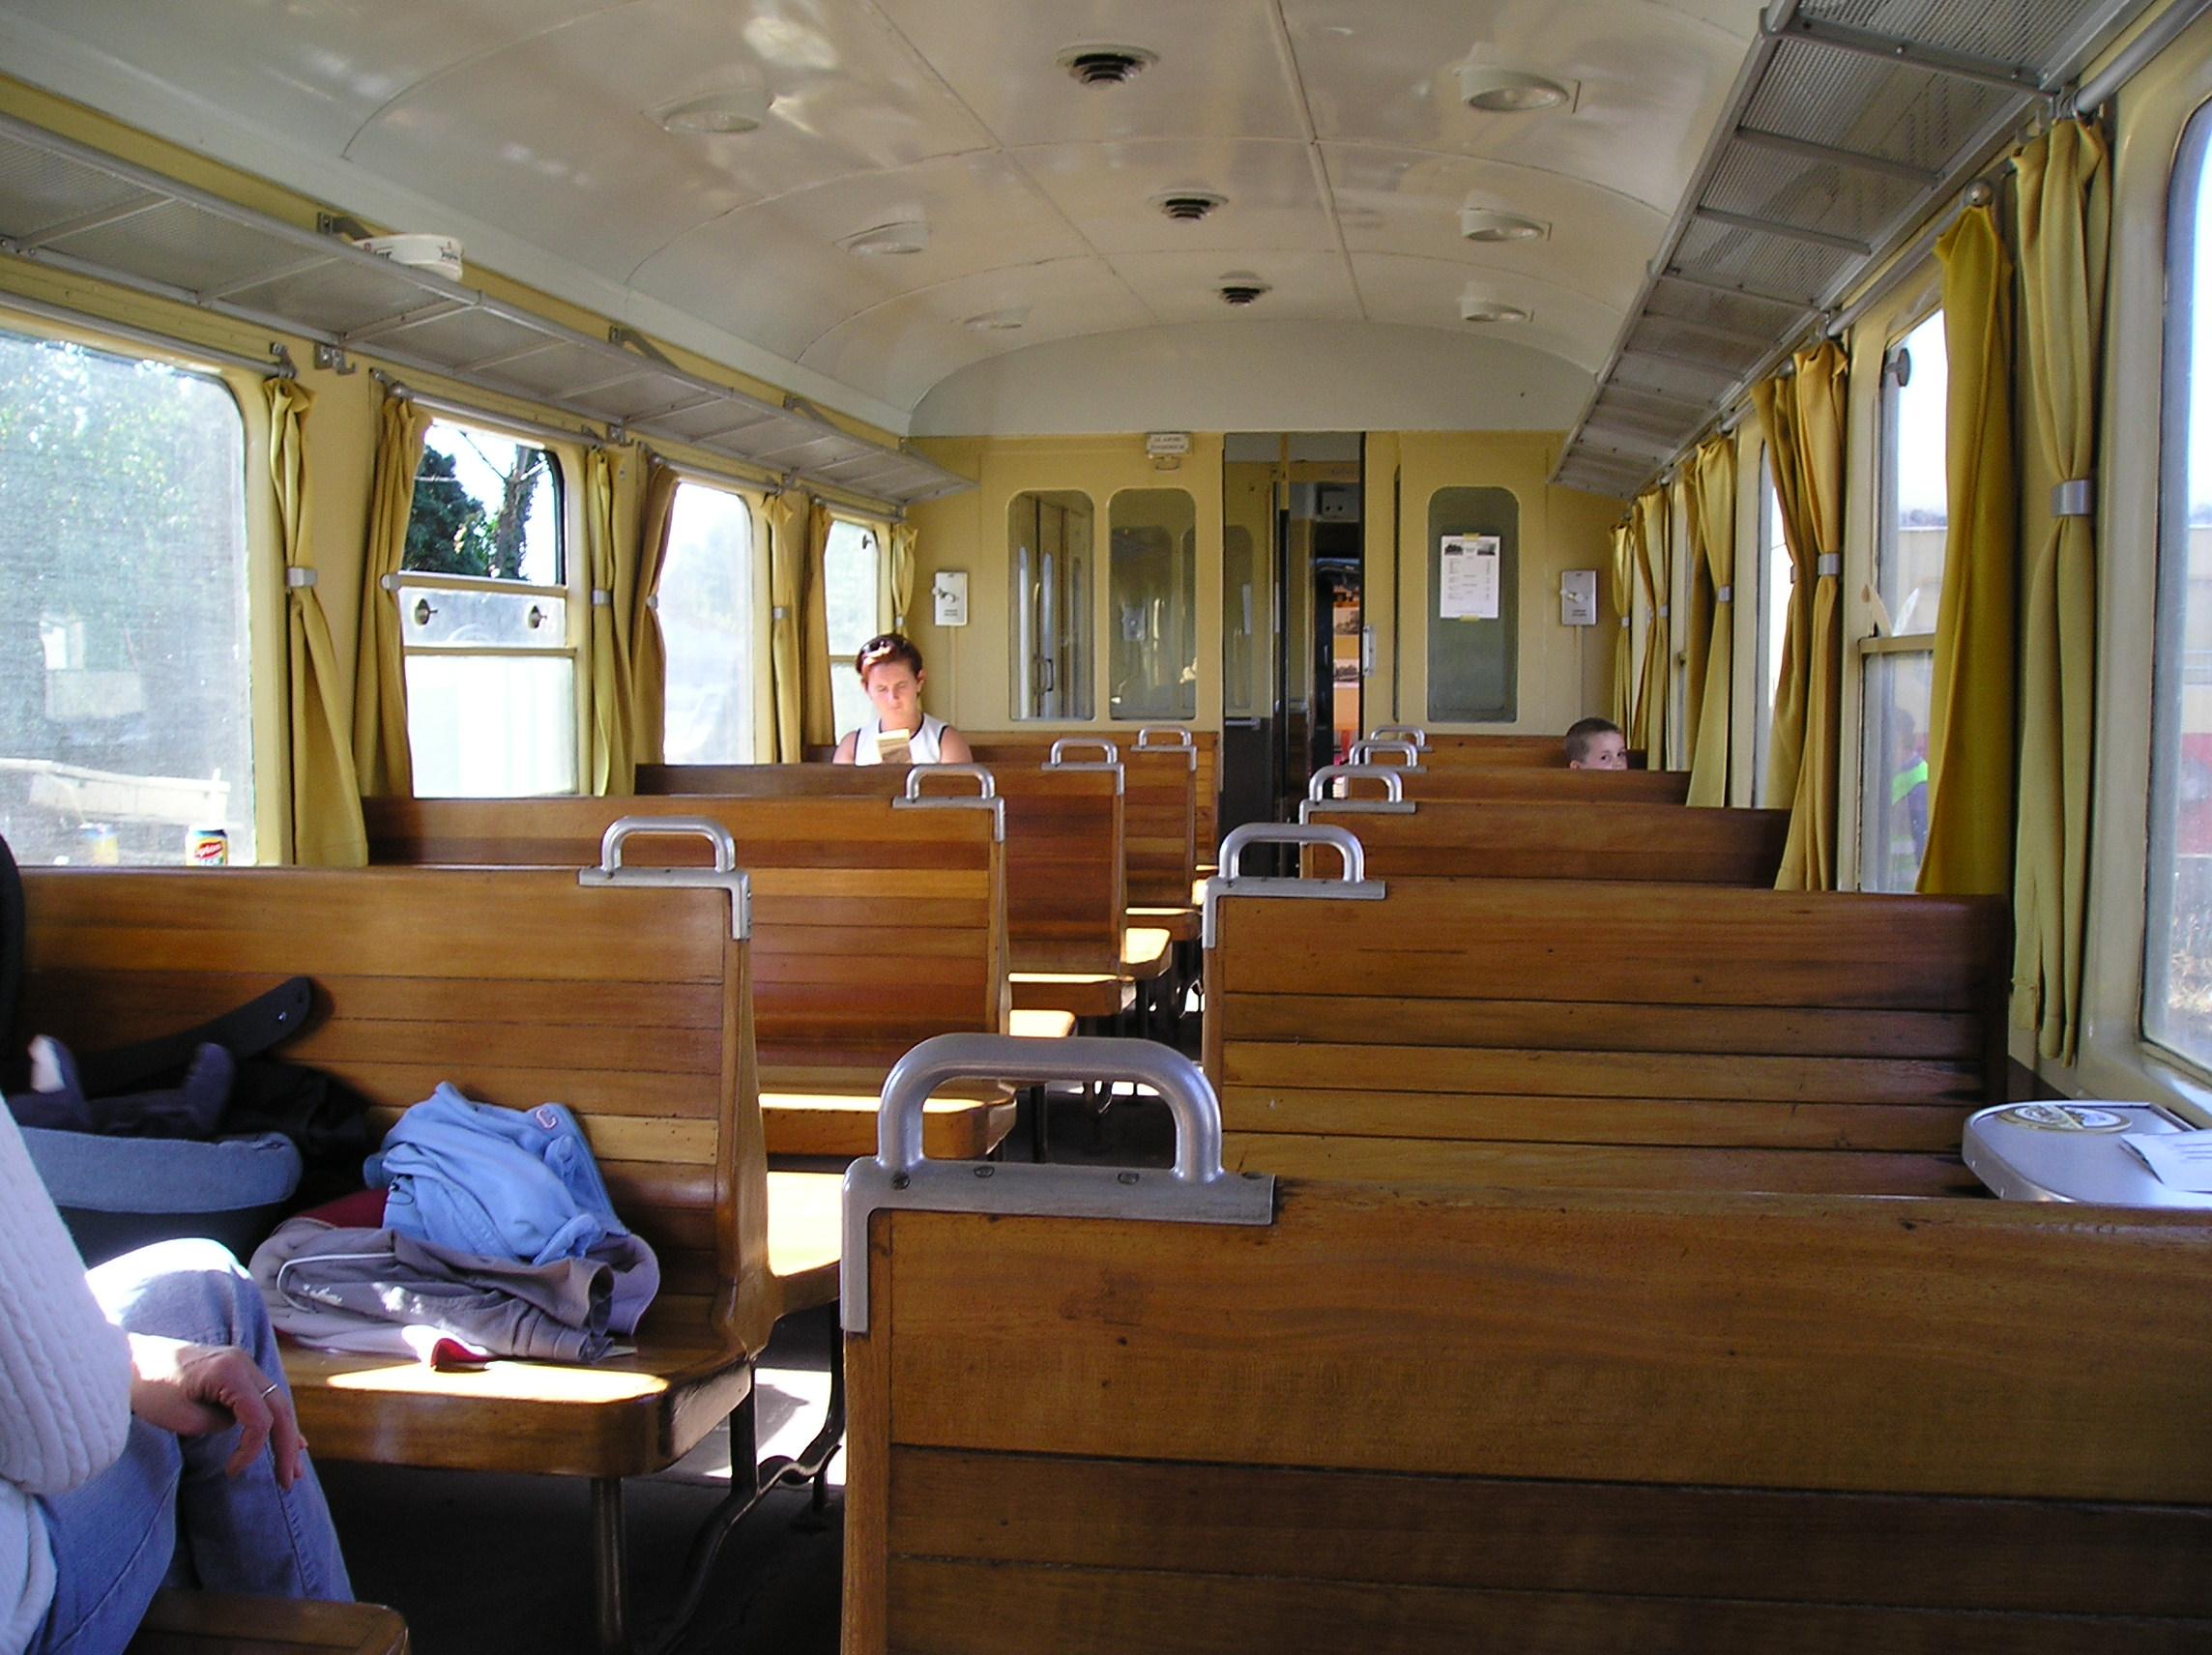 file m1 rail car interior 23 jpg wikimedia commons. Black Bedroom Furniture Sets. Home Design Ideas